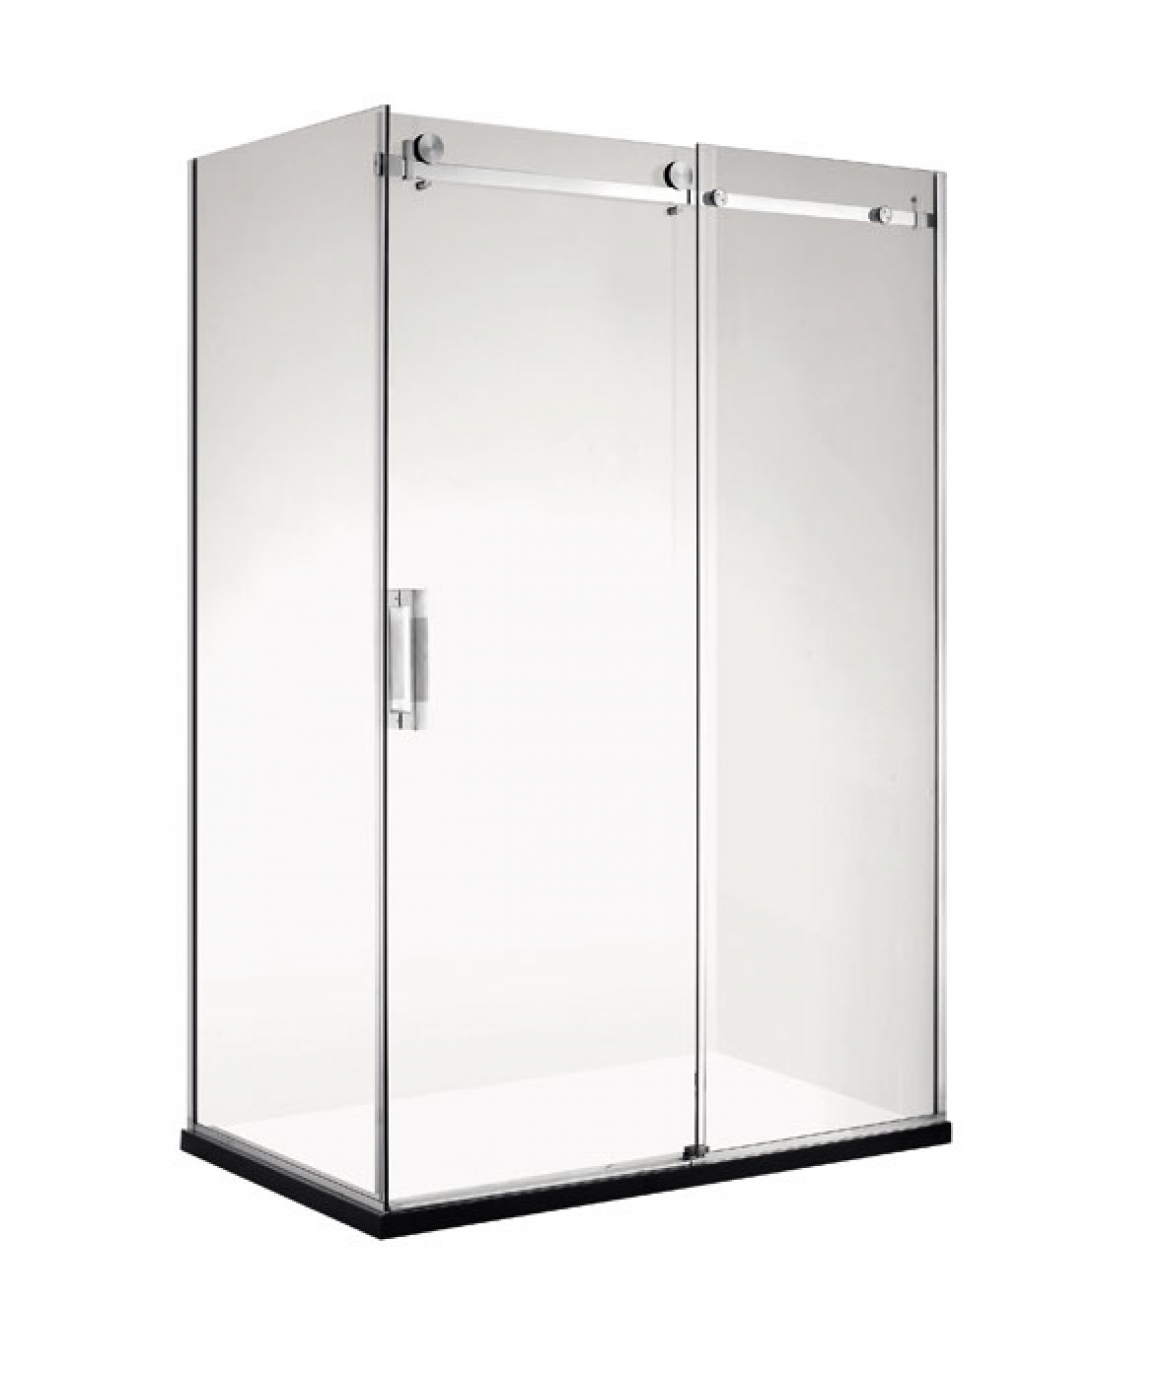 Frameless Corner sliding door Shower screen [1800 x 900 mm]